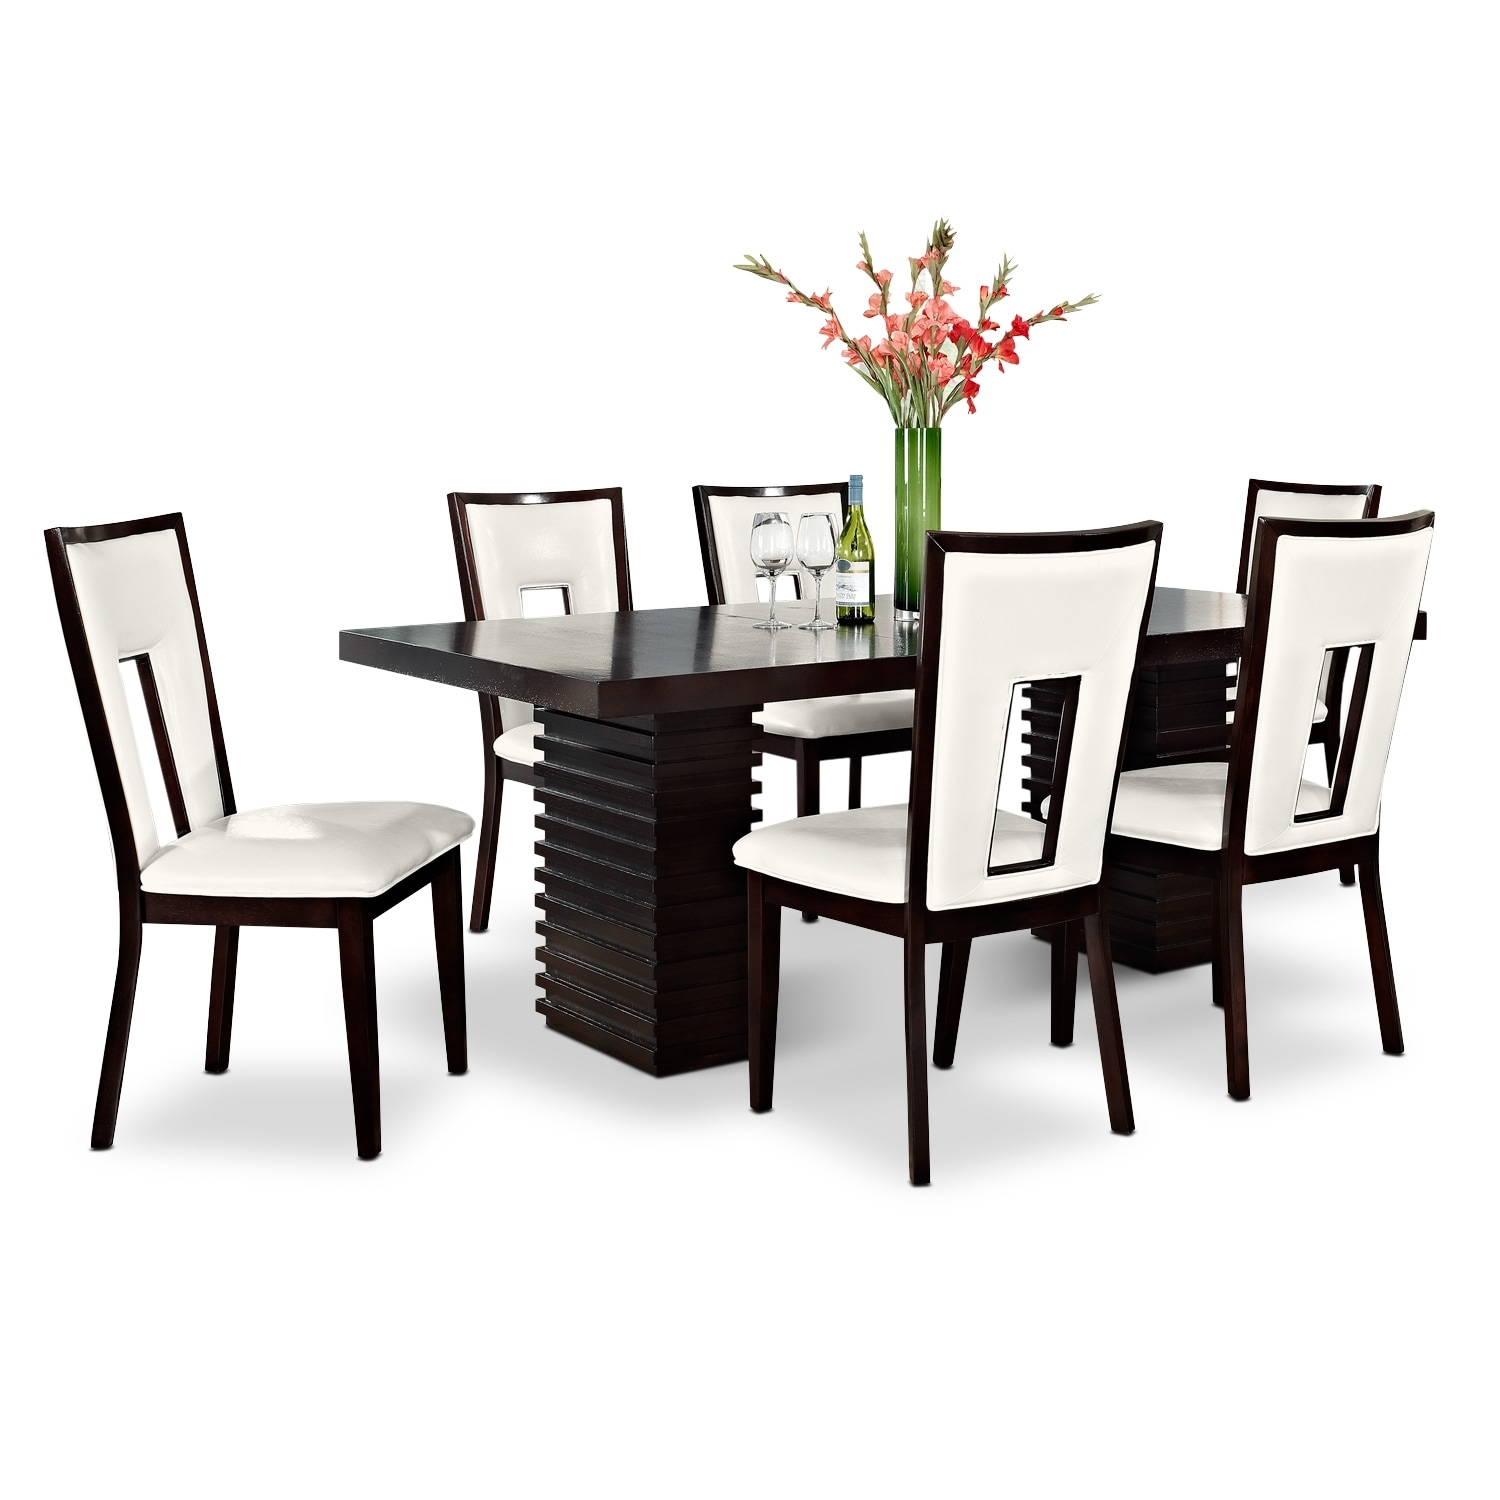 Dining Room Furniture - Paragon Madera II 7 Pc. Dining Room